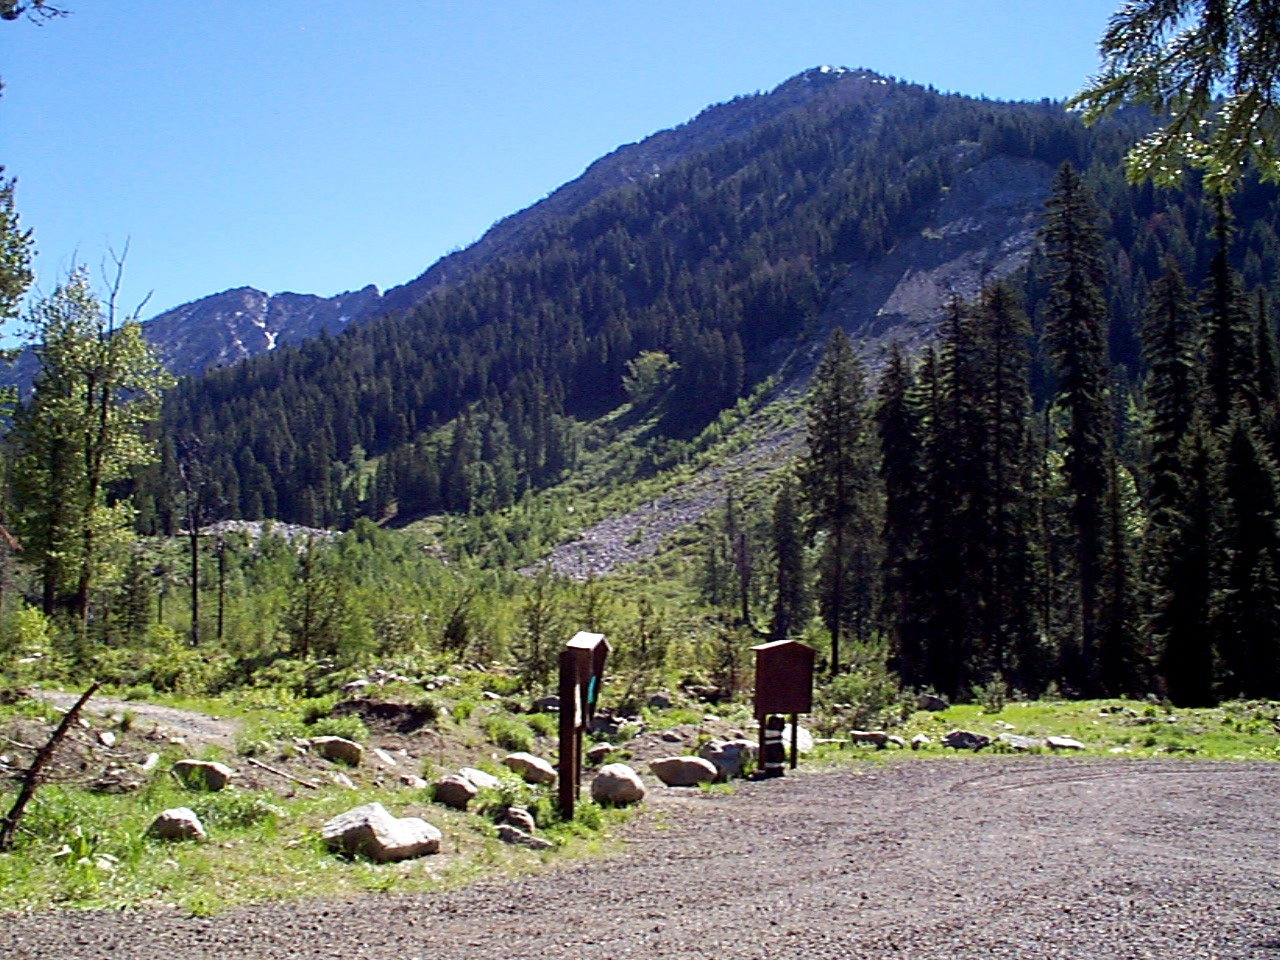 Main Eagle Trailhead with mountains in background